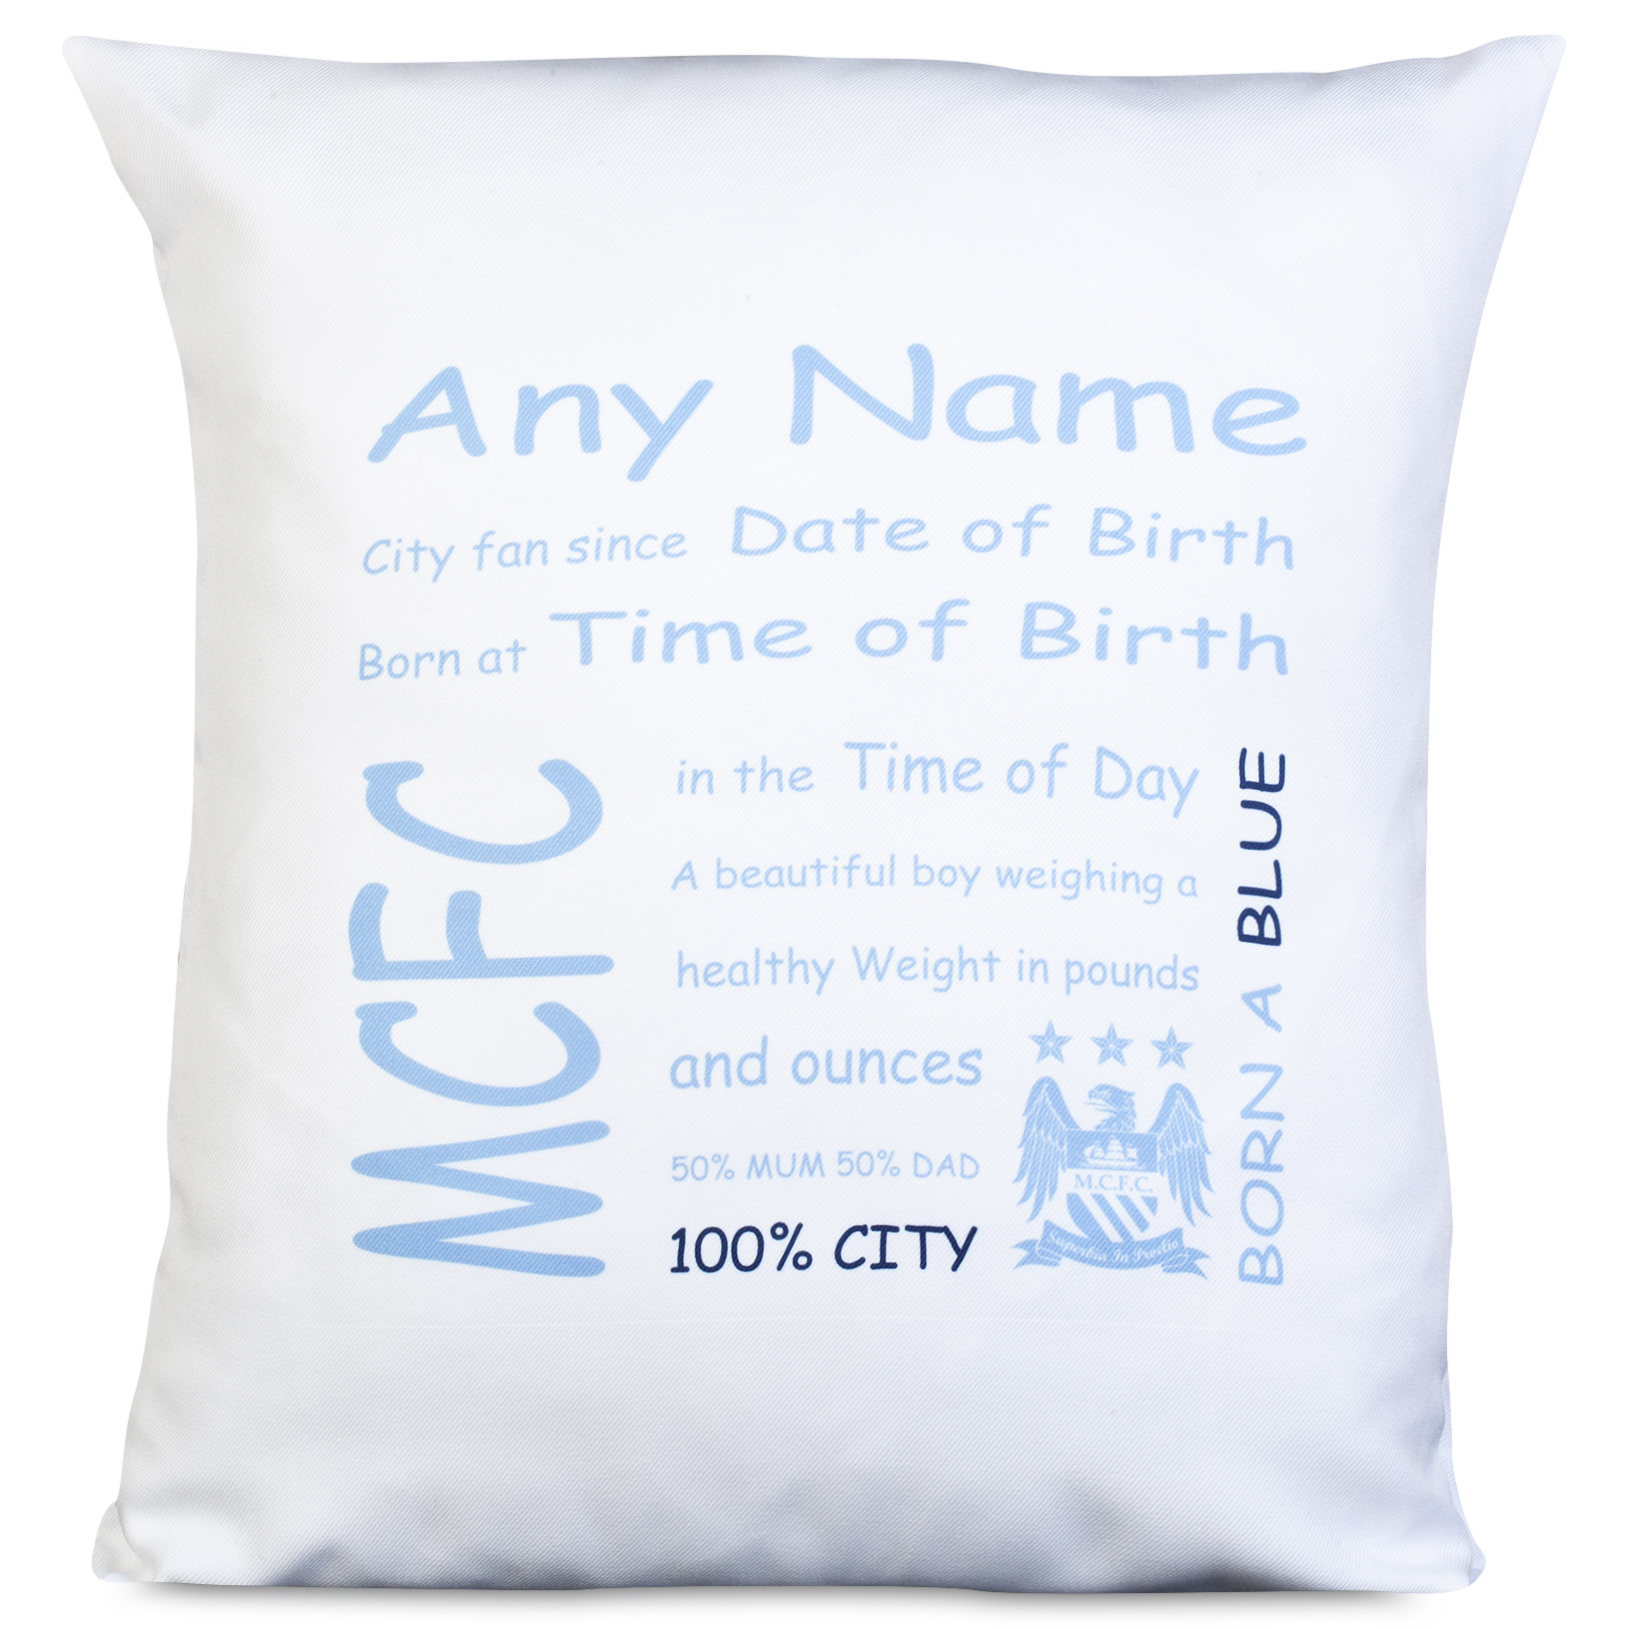 Manchester City Personalised Crest City Fan Since Cushion with Padding 400 X 400 mm